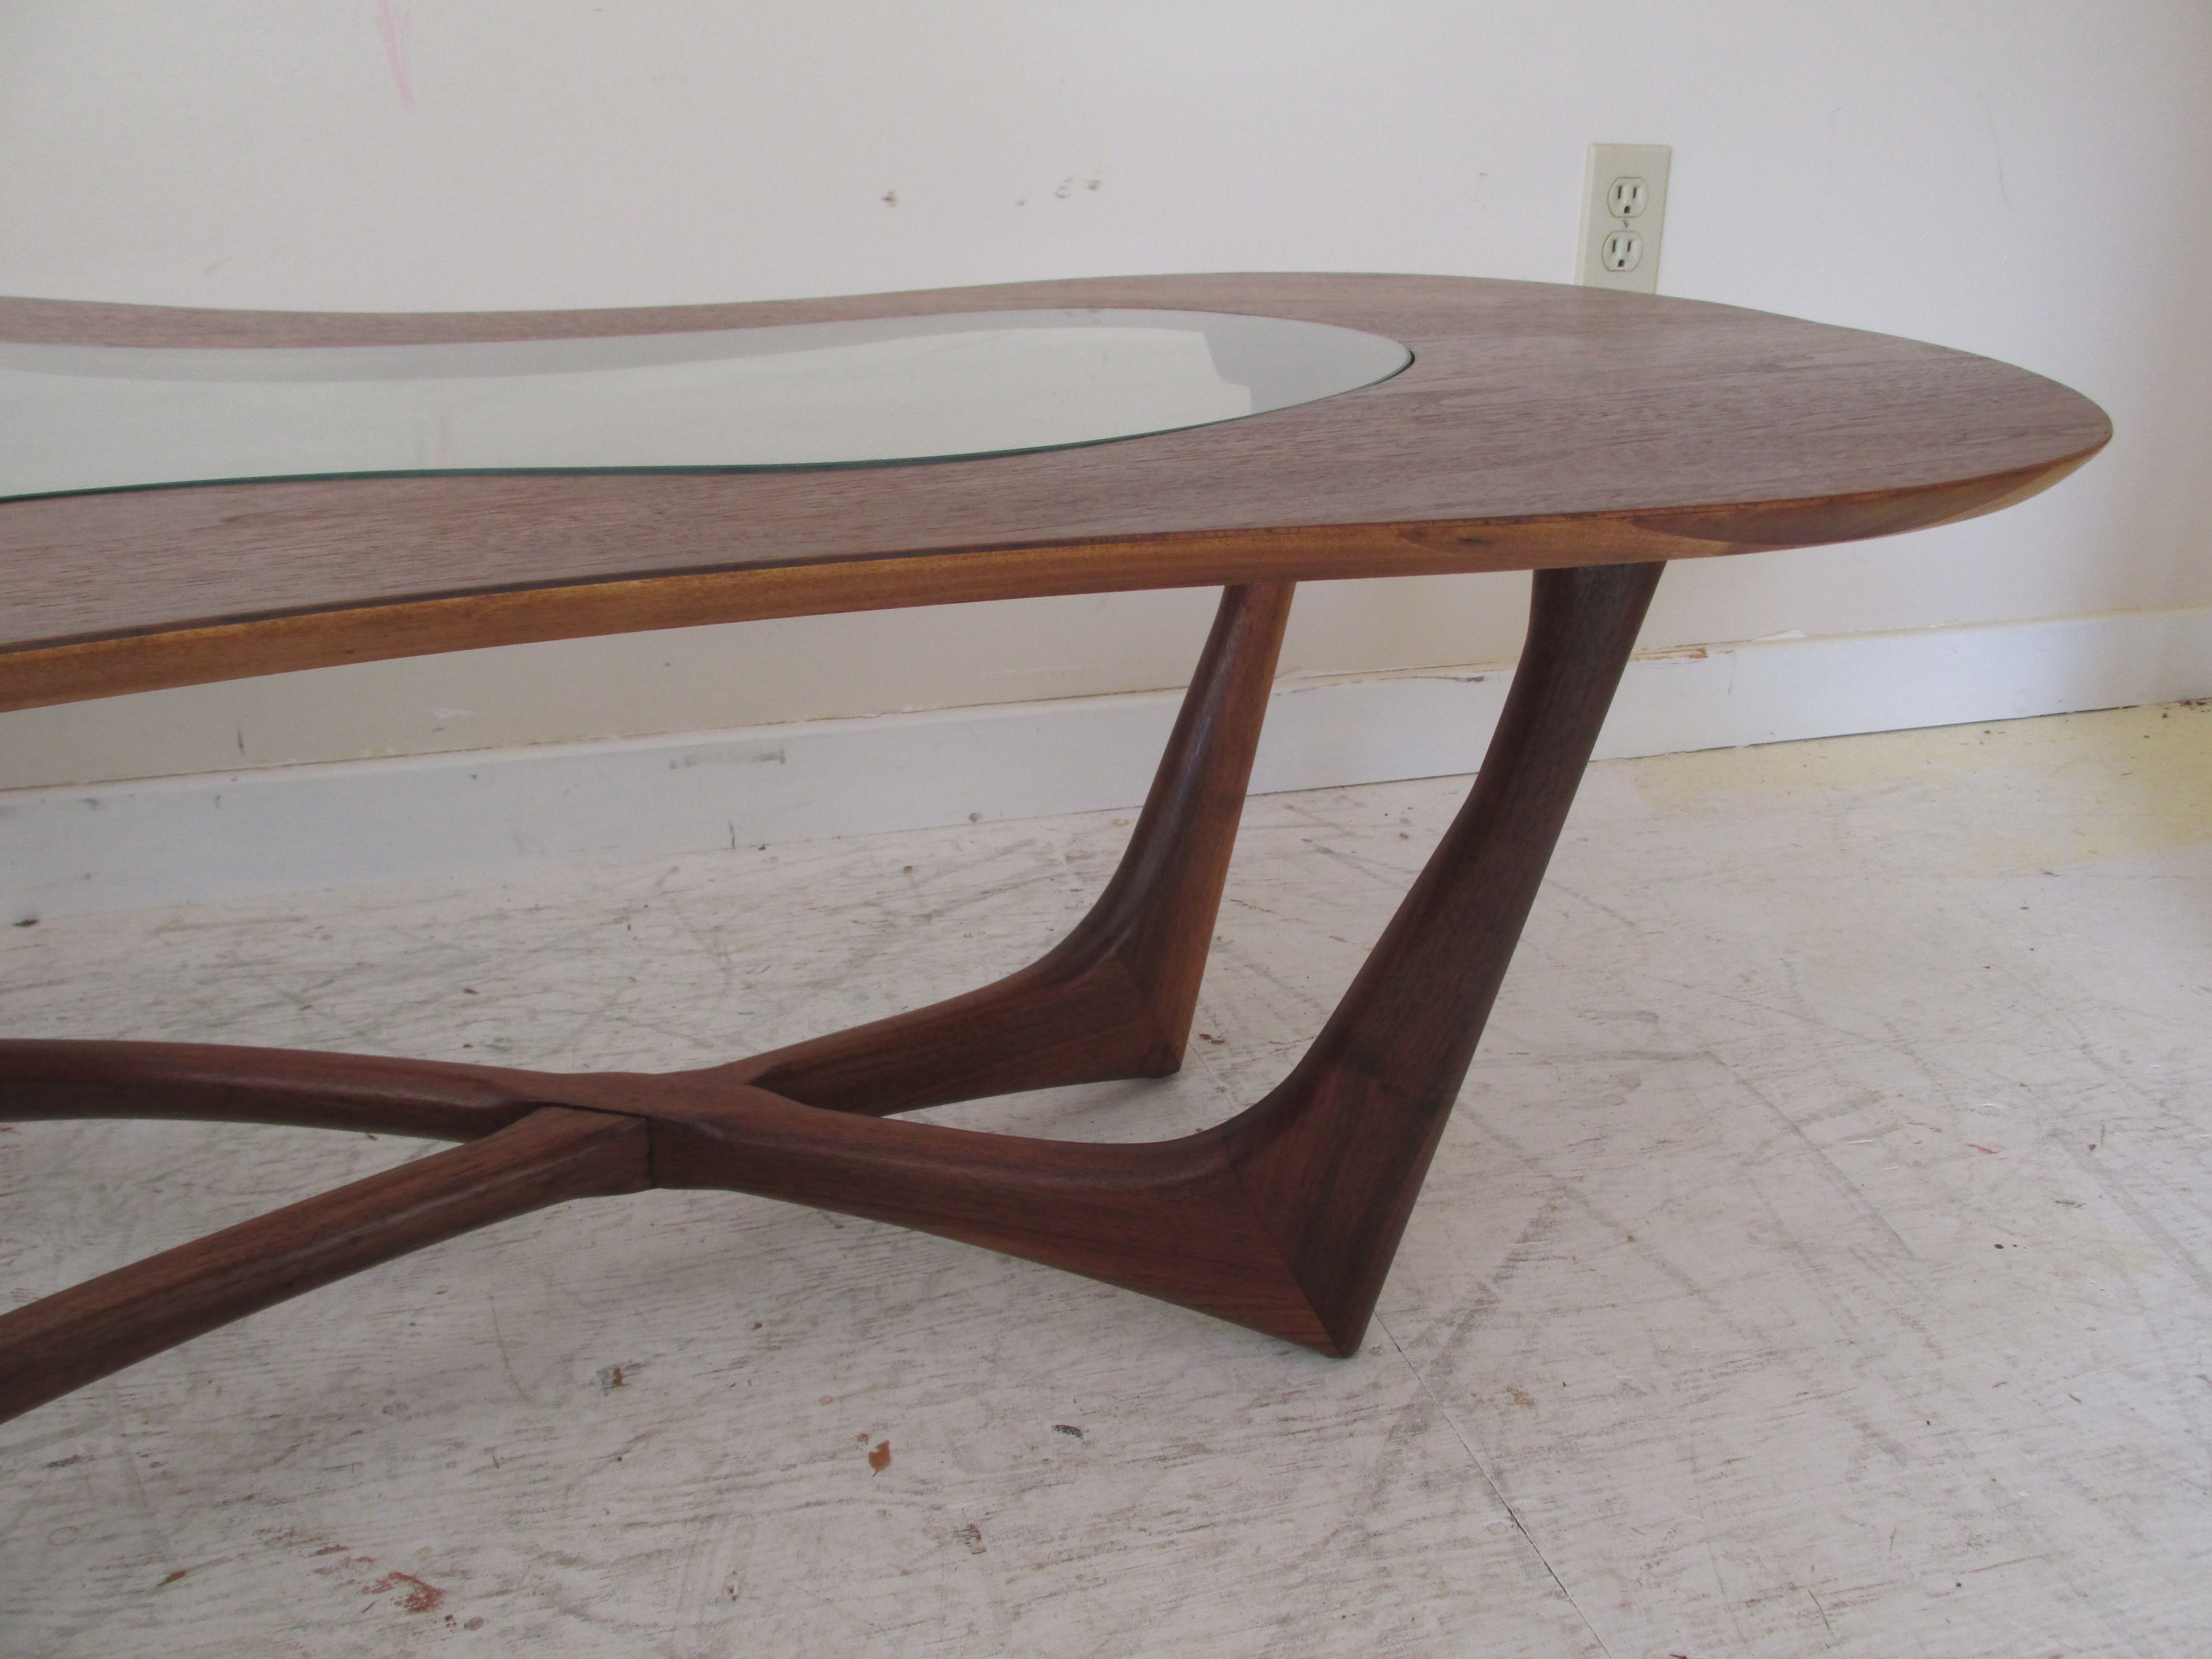 Vintage Biomorphic Coffee Table by Erno Fabry Chairish